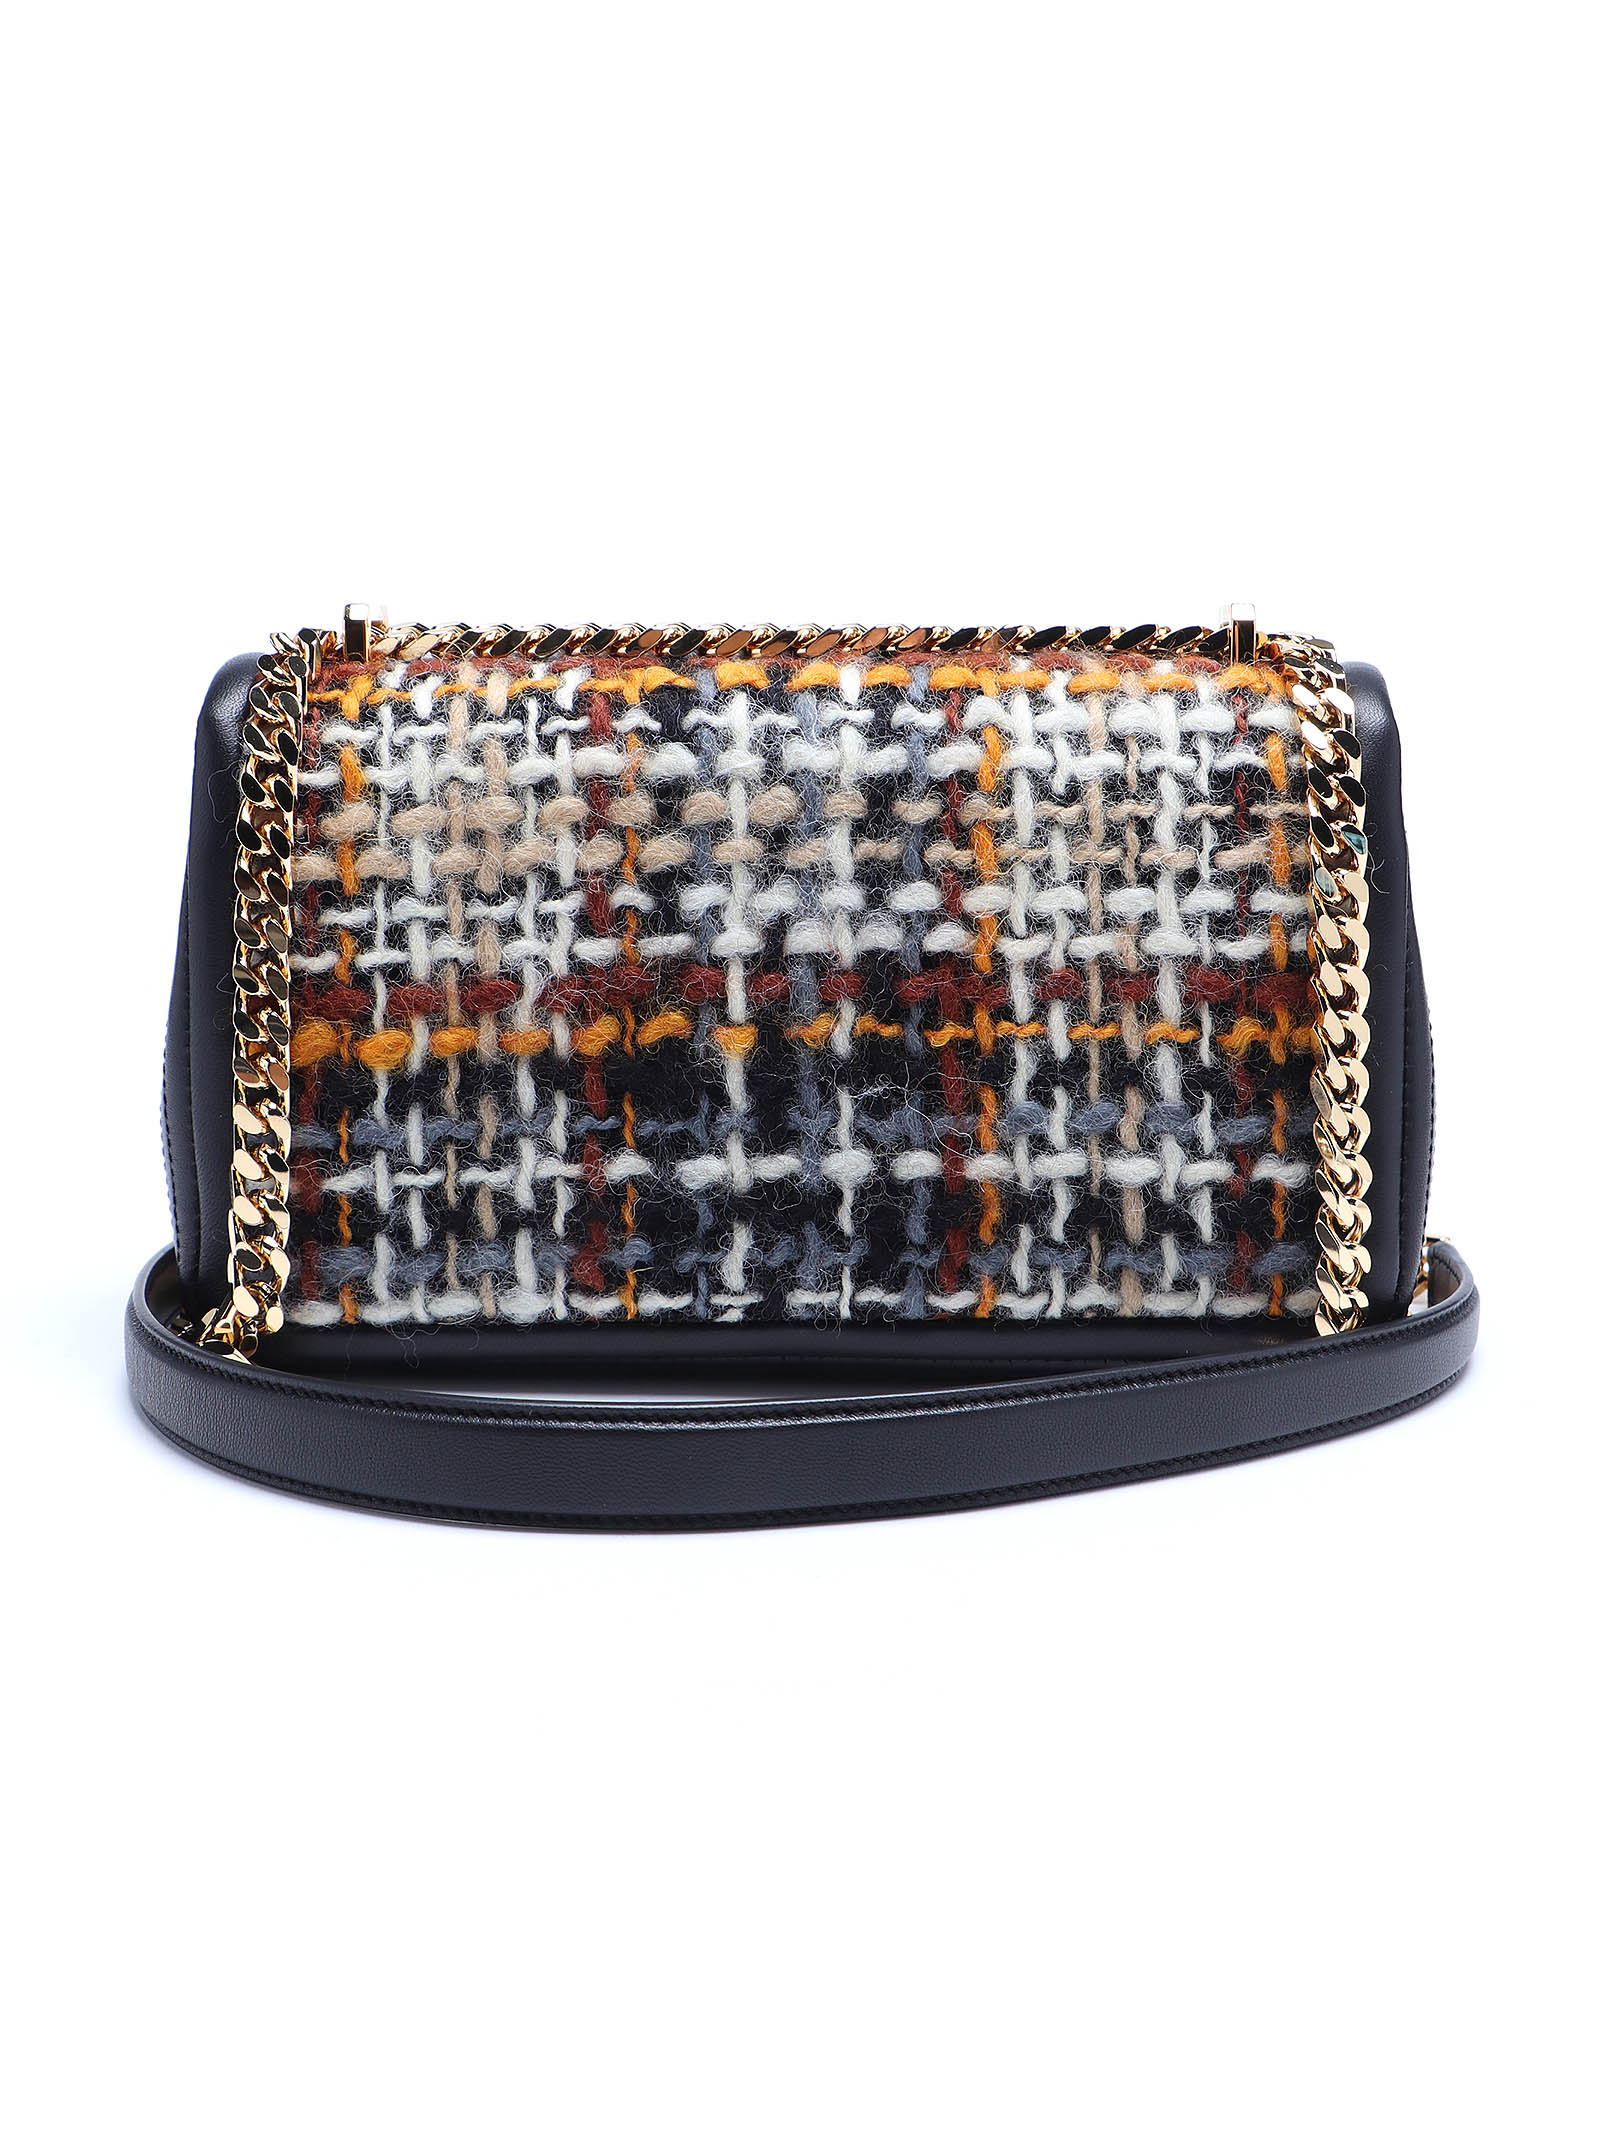 Picture of Burberry | Small Lola Clutch